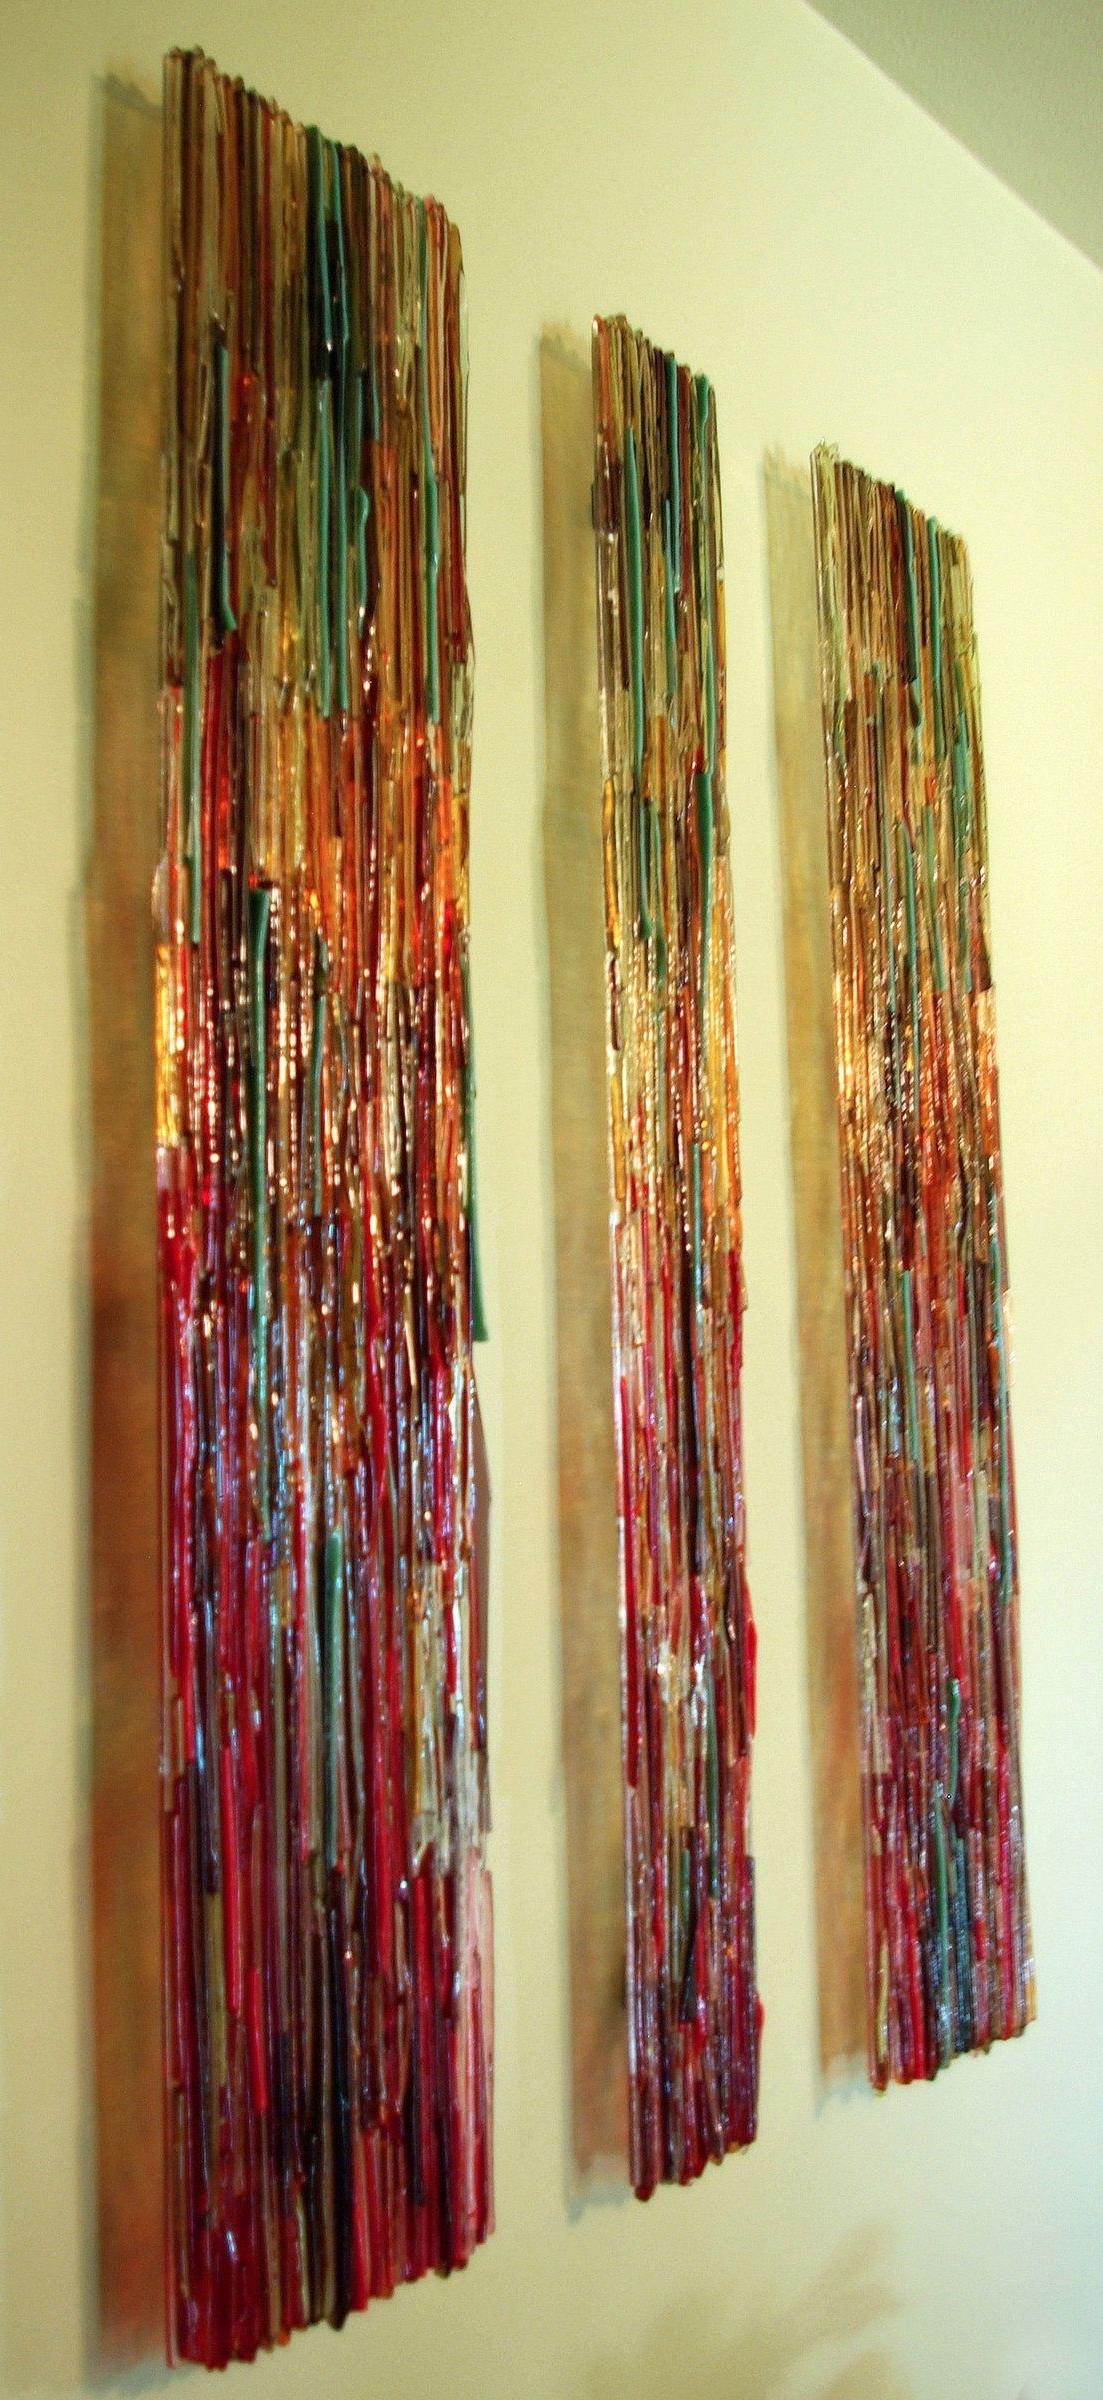 Fused Glass Wall Artwork Pertaining To Well Known Transpire Wall Panels: Sarinda Jones: Art Glass Wall Art – Artful (View 4 of 15)